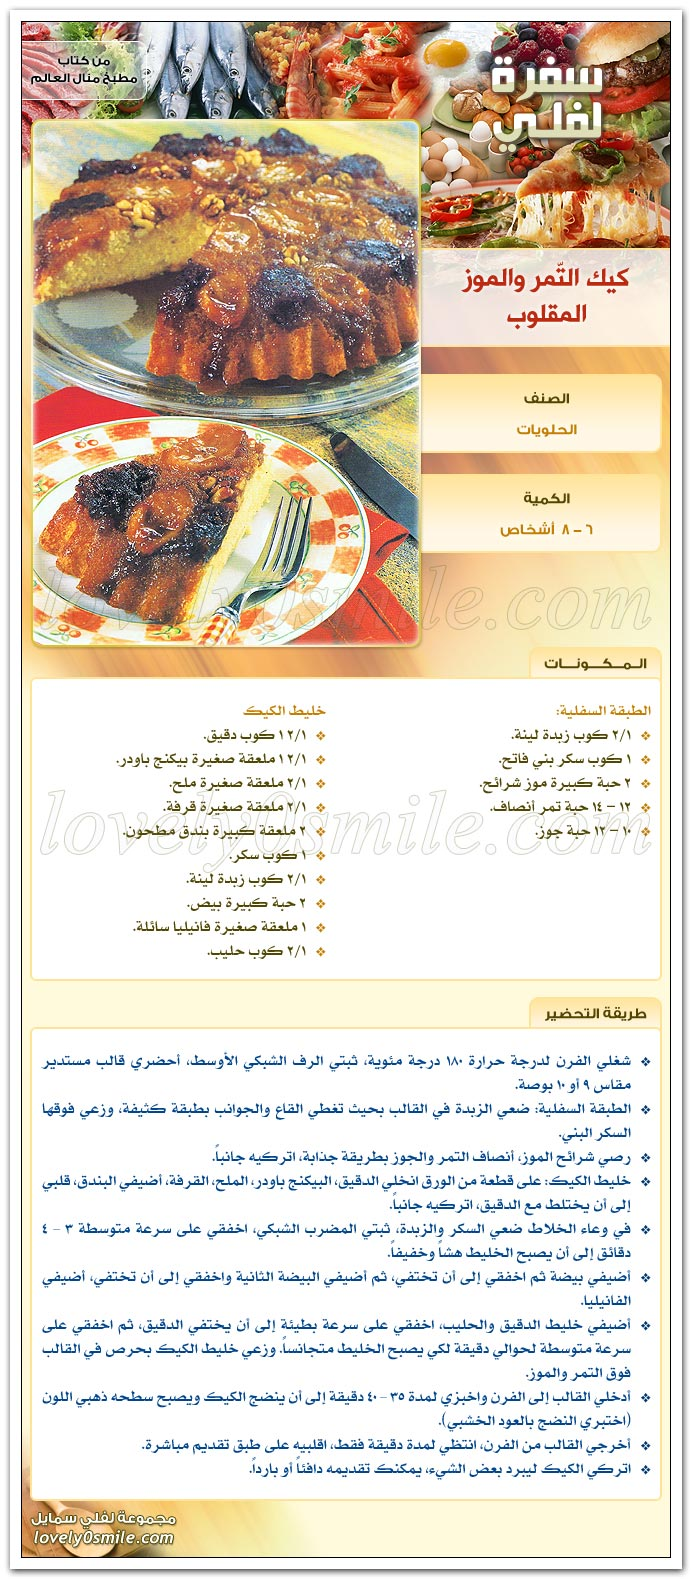 http://www.qassimy.com/up/users/qassimy/manal_alalem_cookbook_recipes_cooking_18.jpg